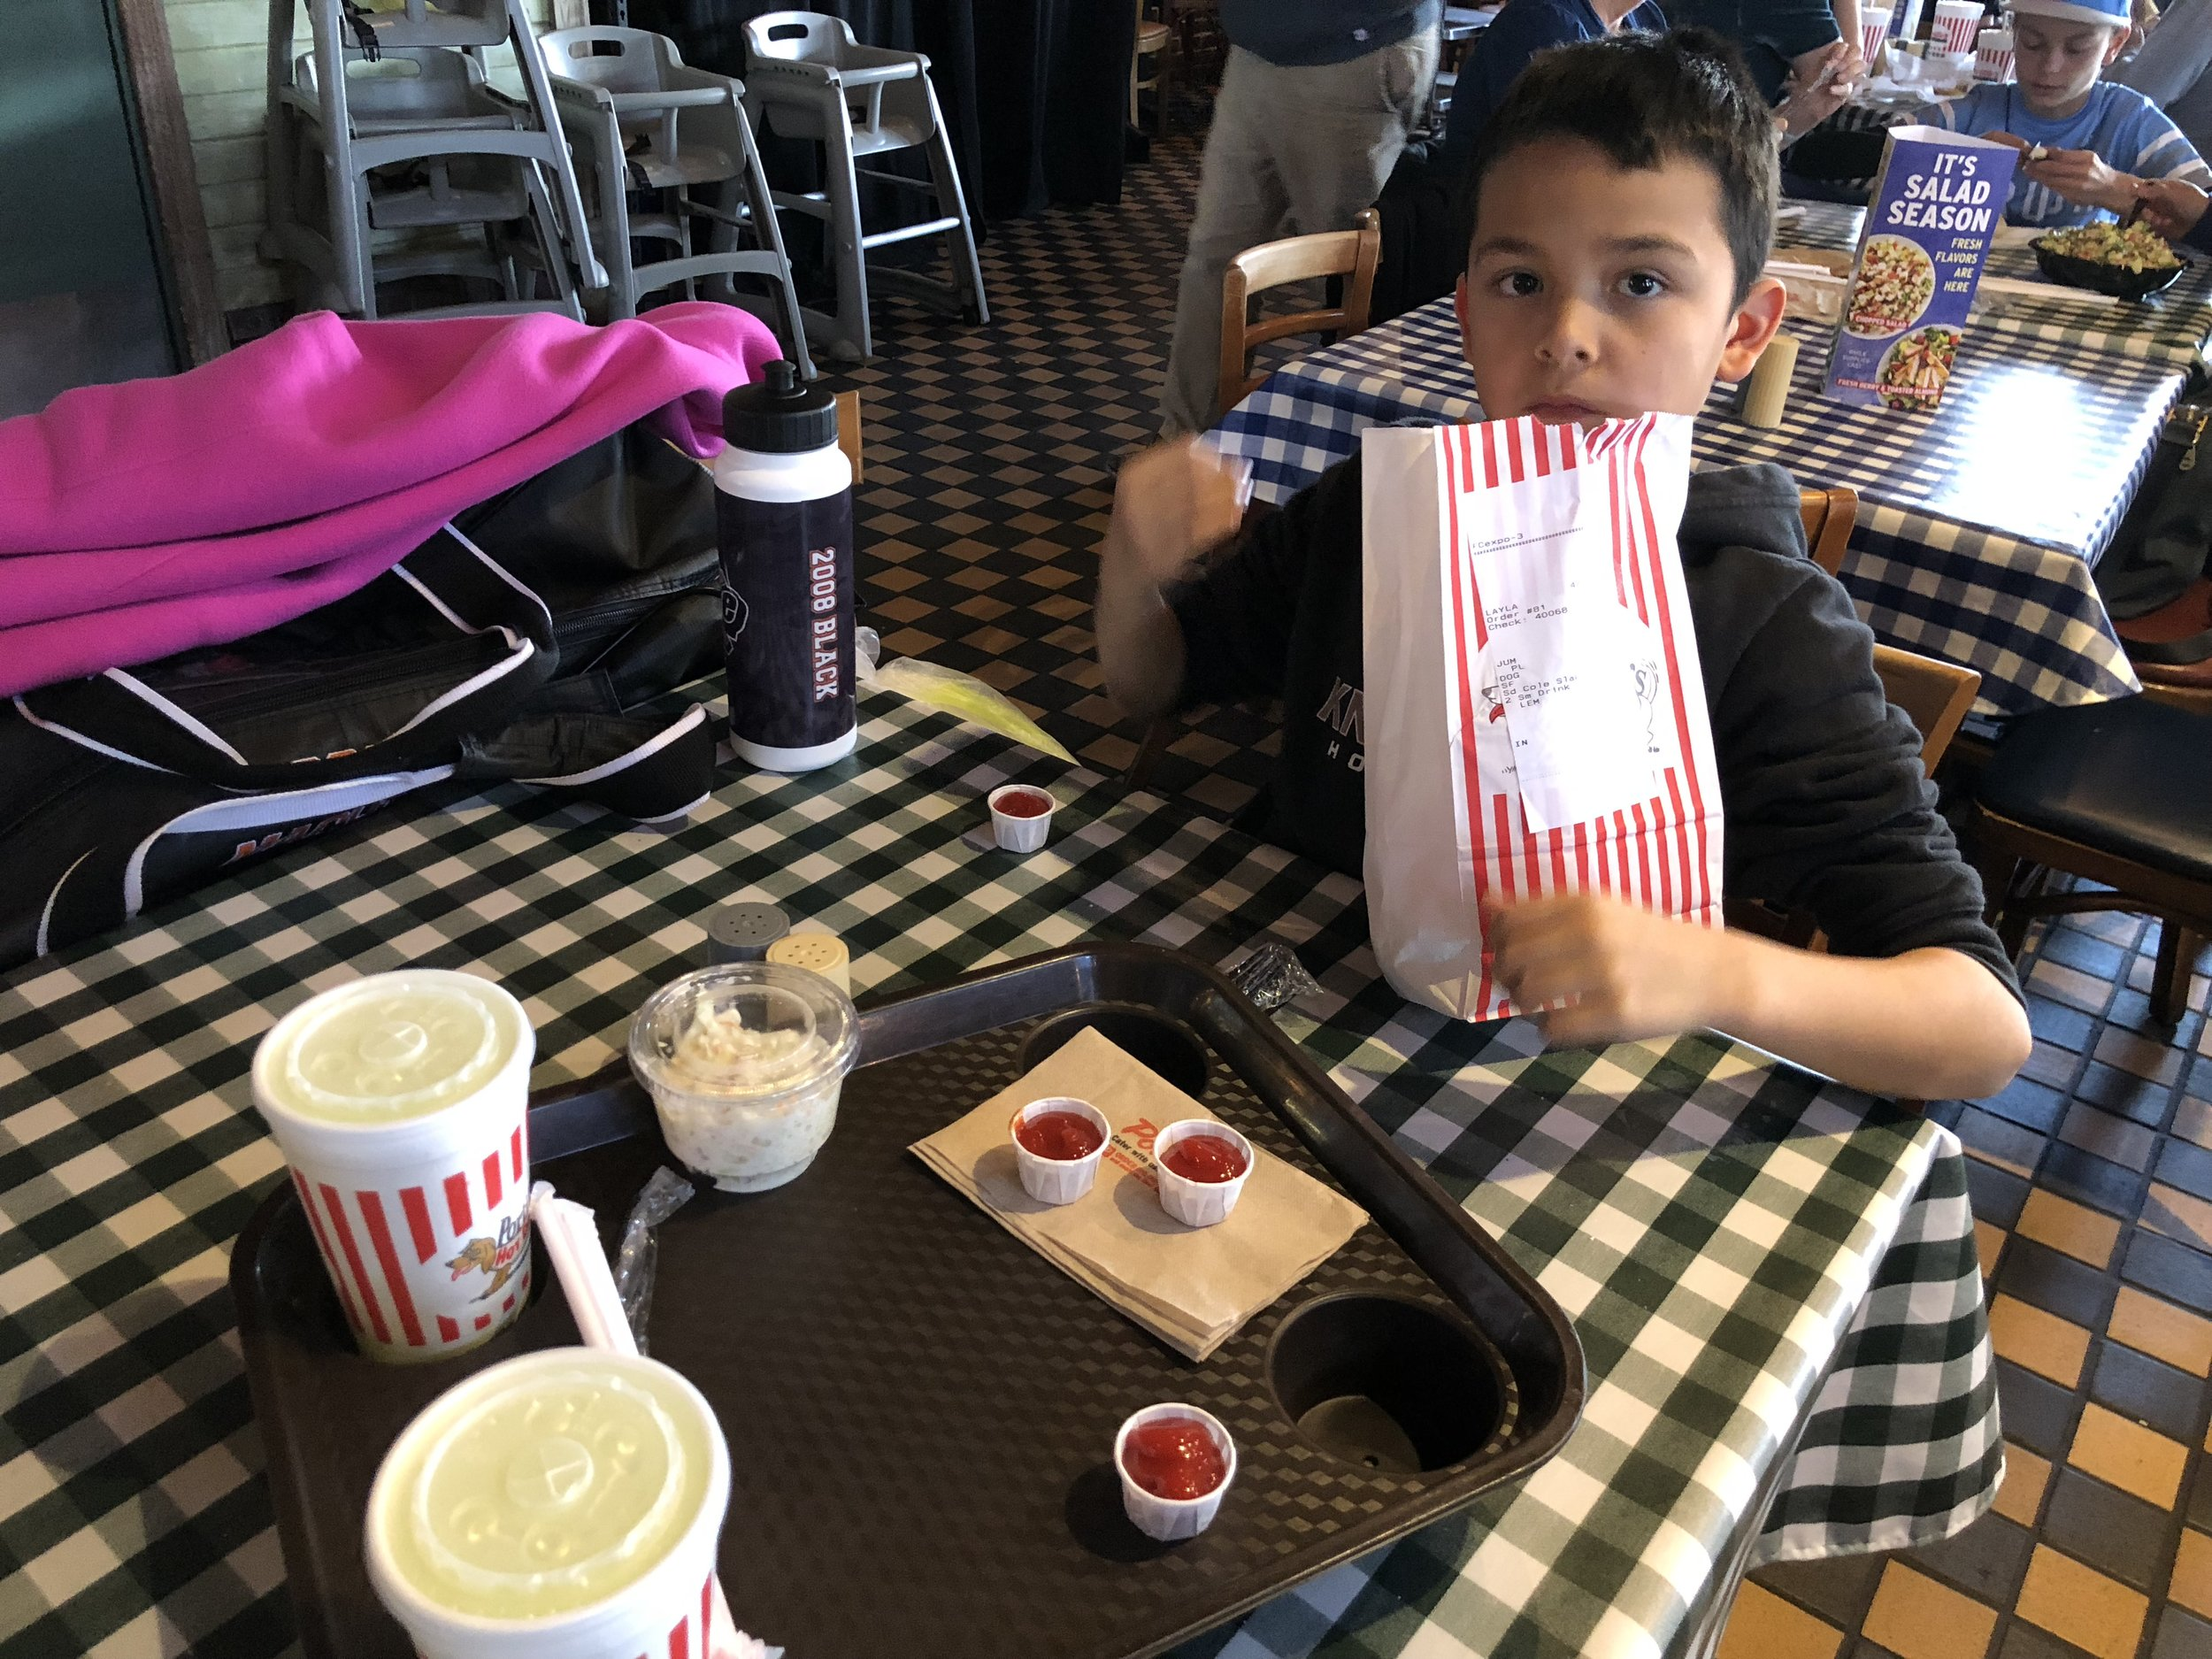 He didn't get to see downtown Chicago but I'm proud that I was at least able to introduce my son to Portillo's.